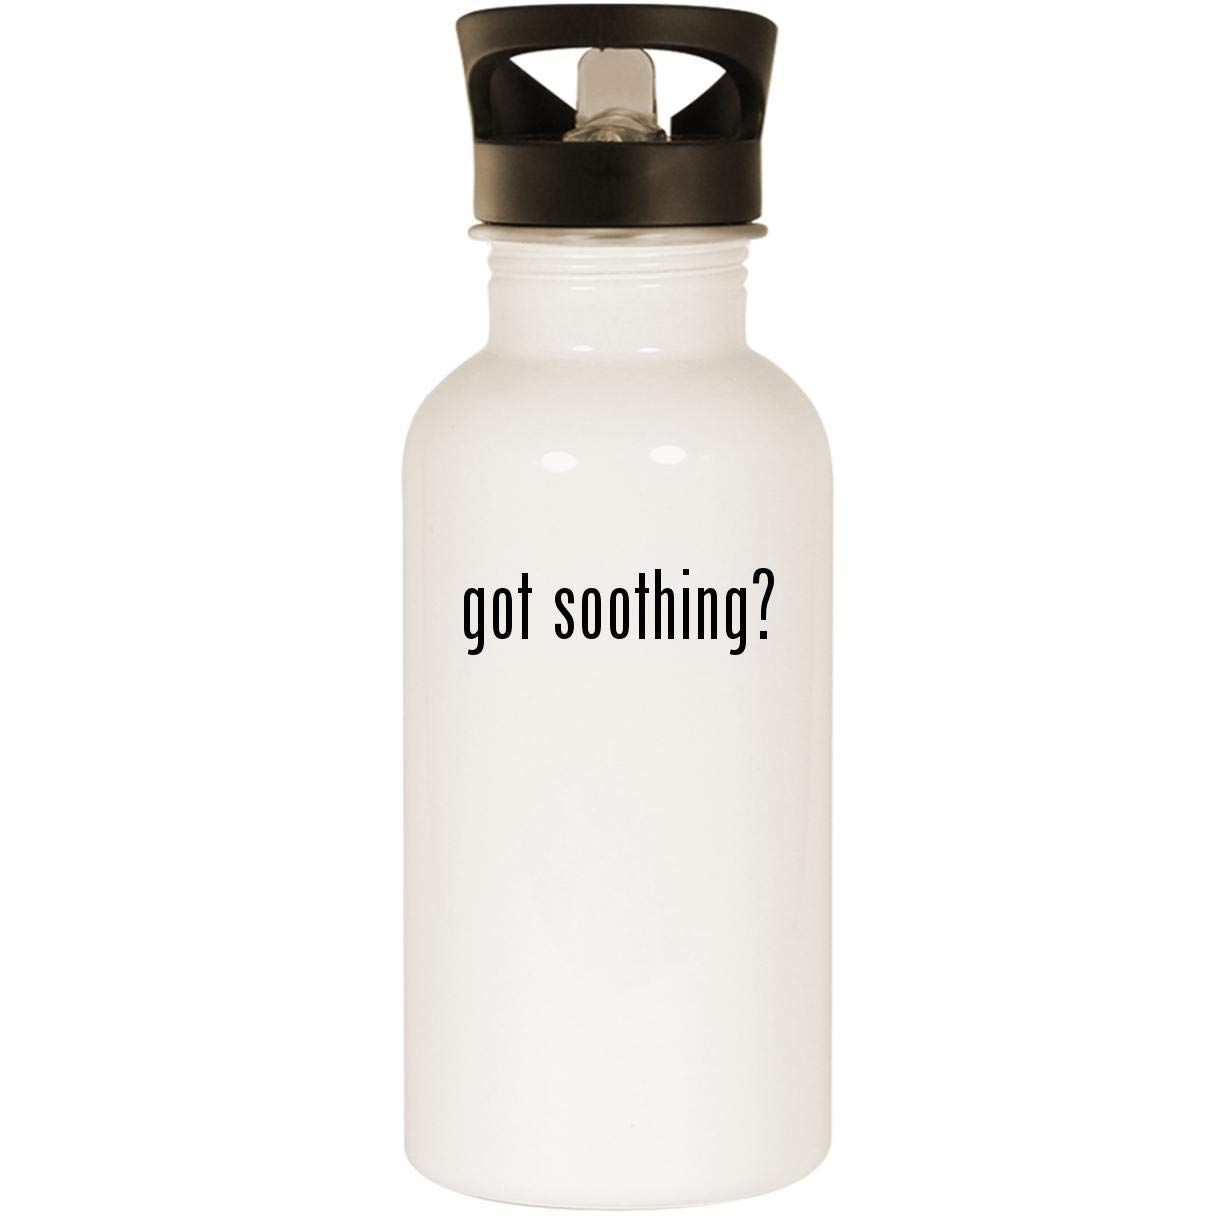 got soothing? - Stainless Steel 20oz Road Ready Water Bottle, White